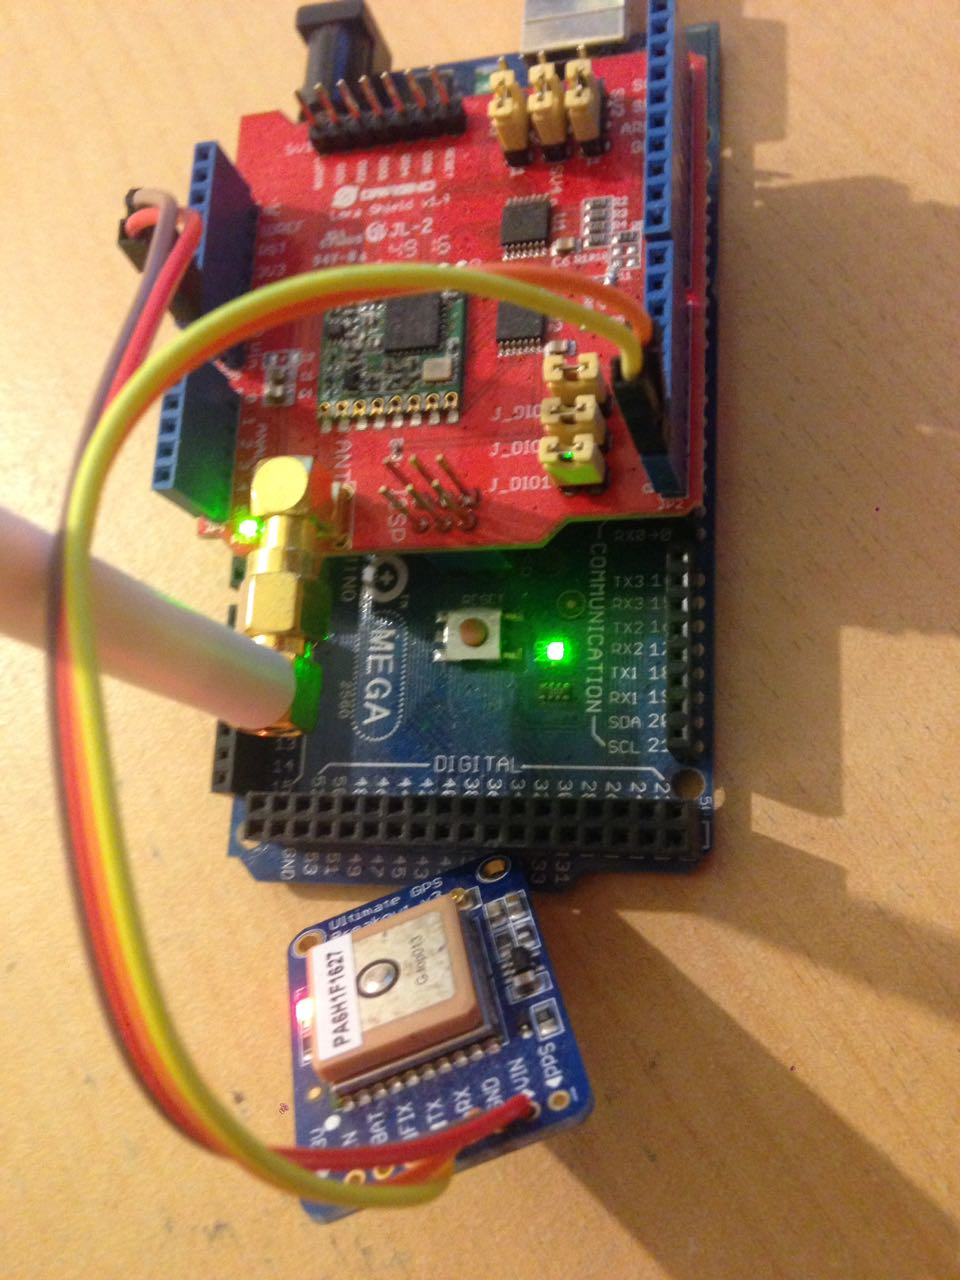 Has anyone tried sending GPS coords to TTN? - Hardware - The